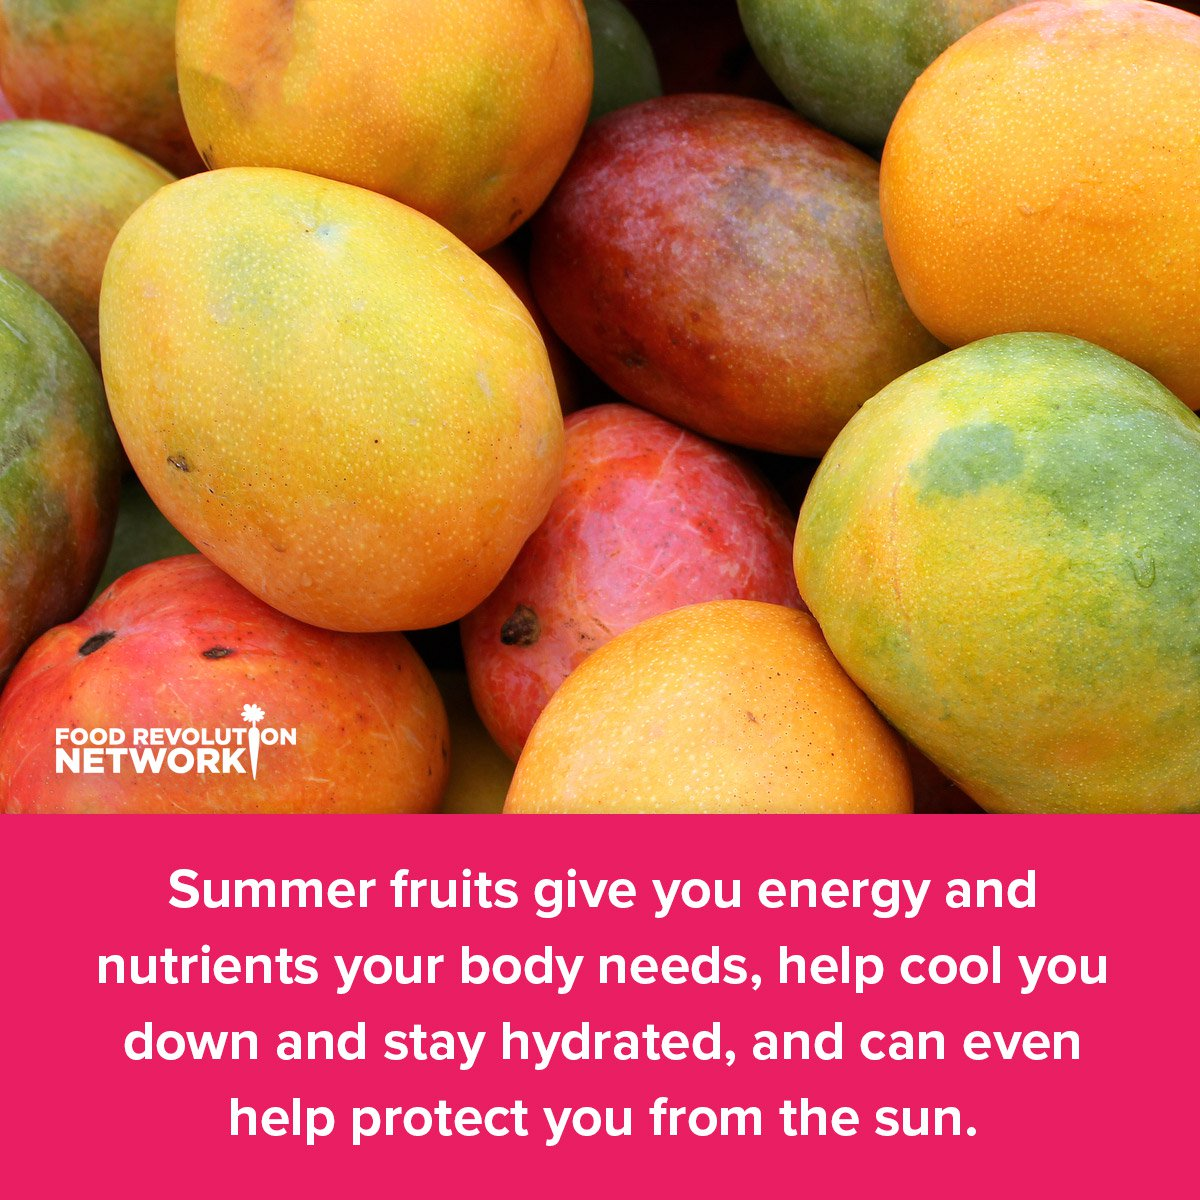 Summer fruits give you energy and nutrients your body needs, help cool you down and stay hydrated, and can even help protect you from the sun.